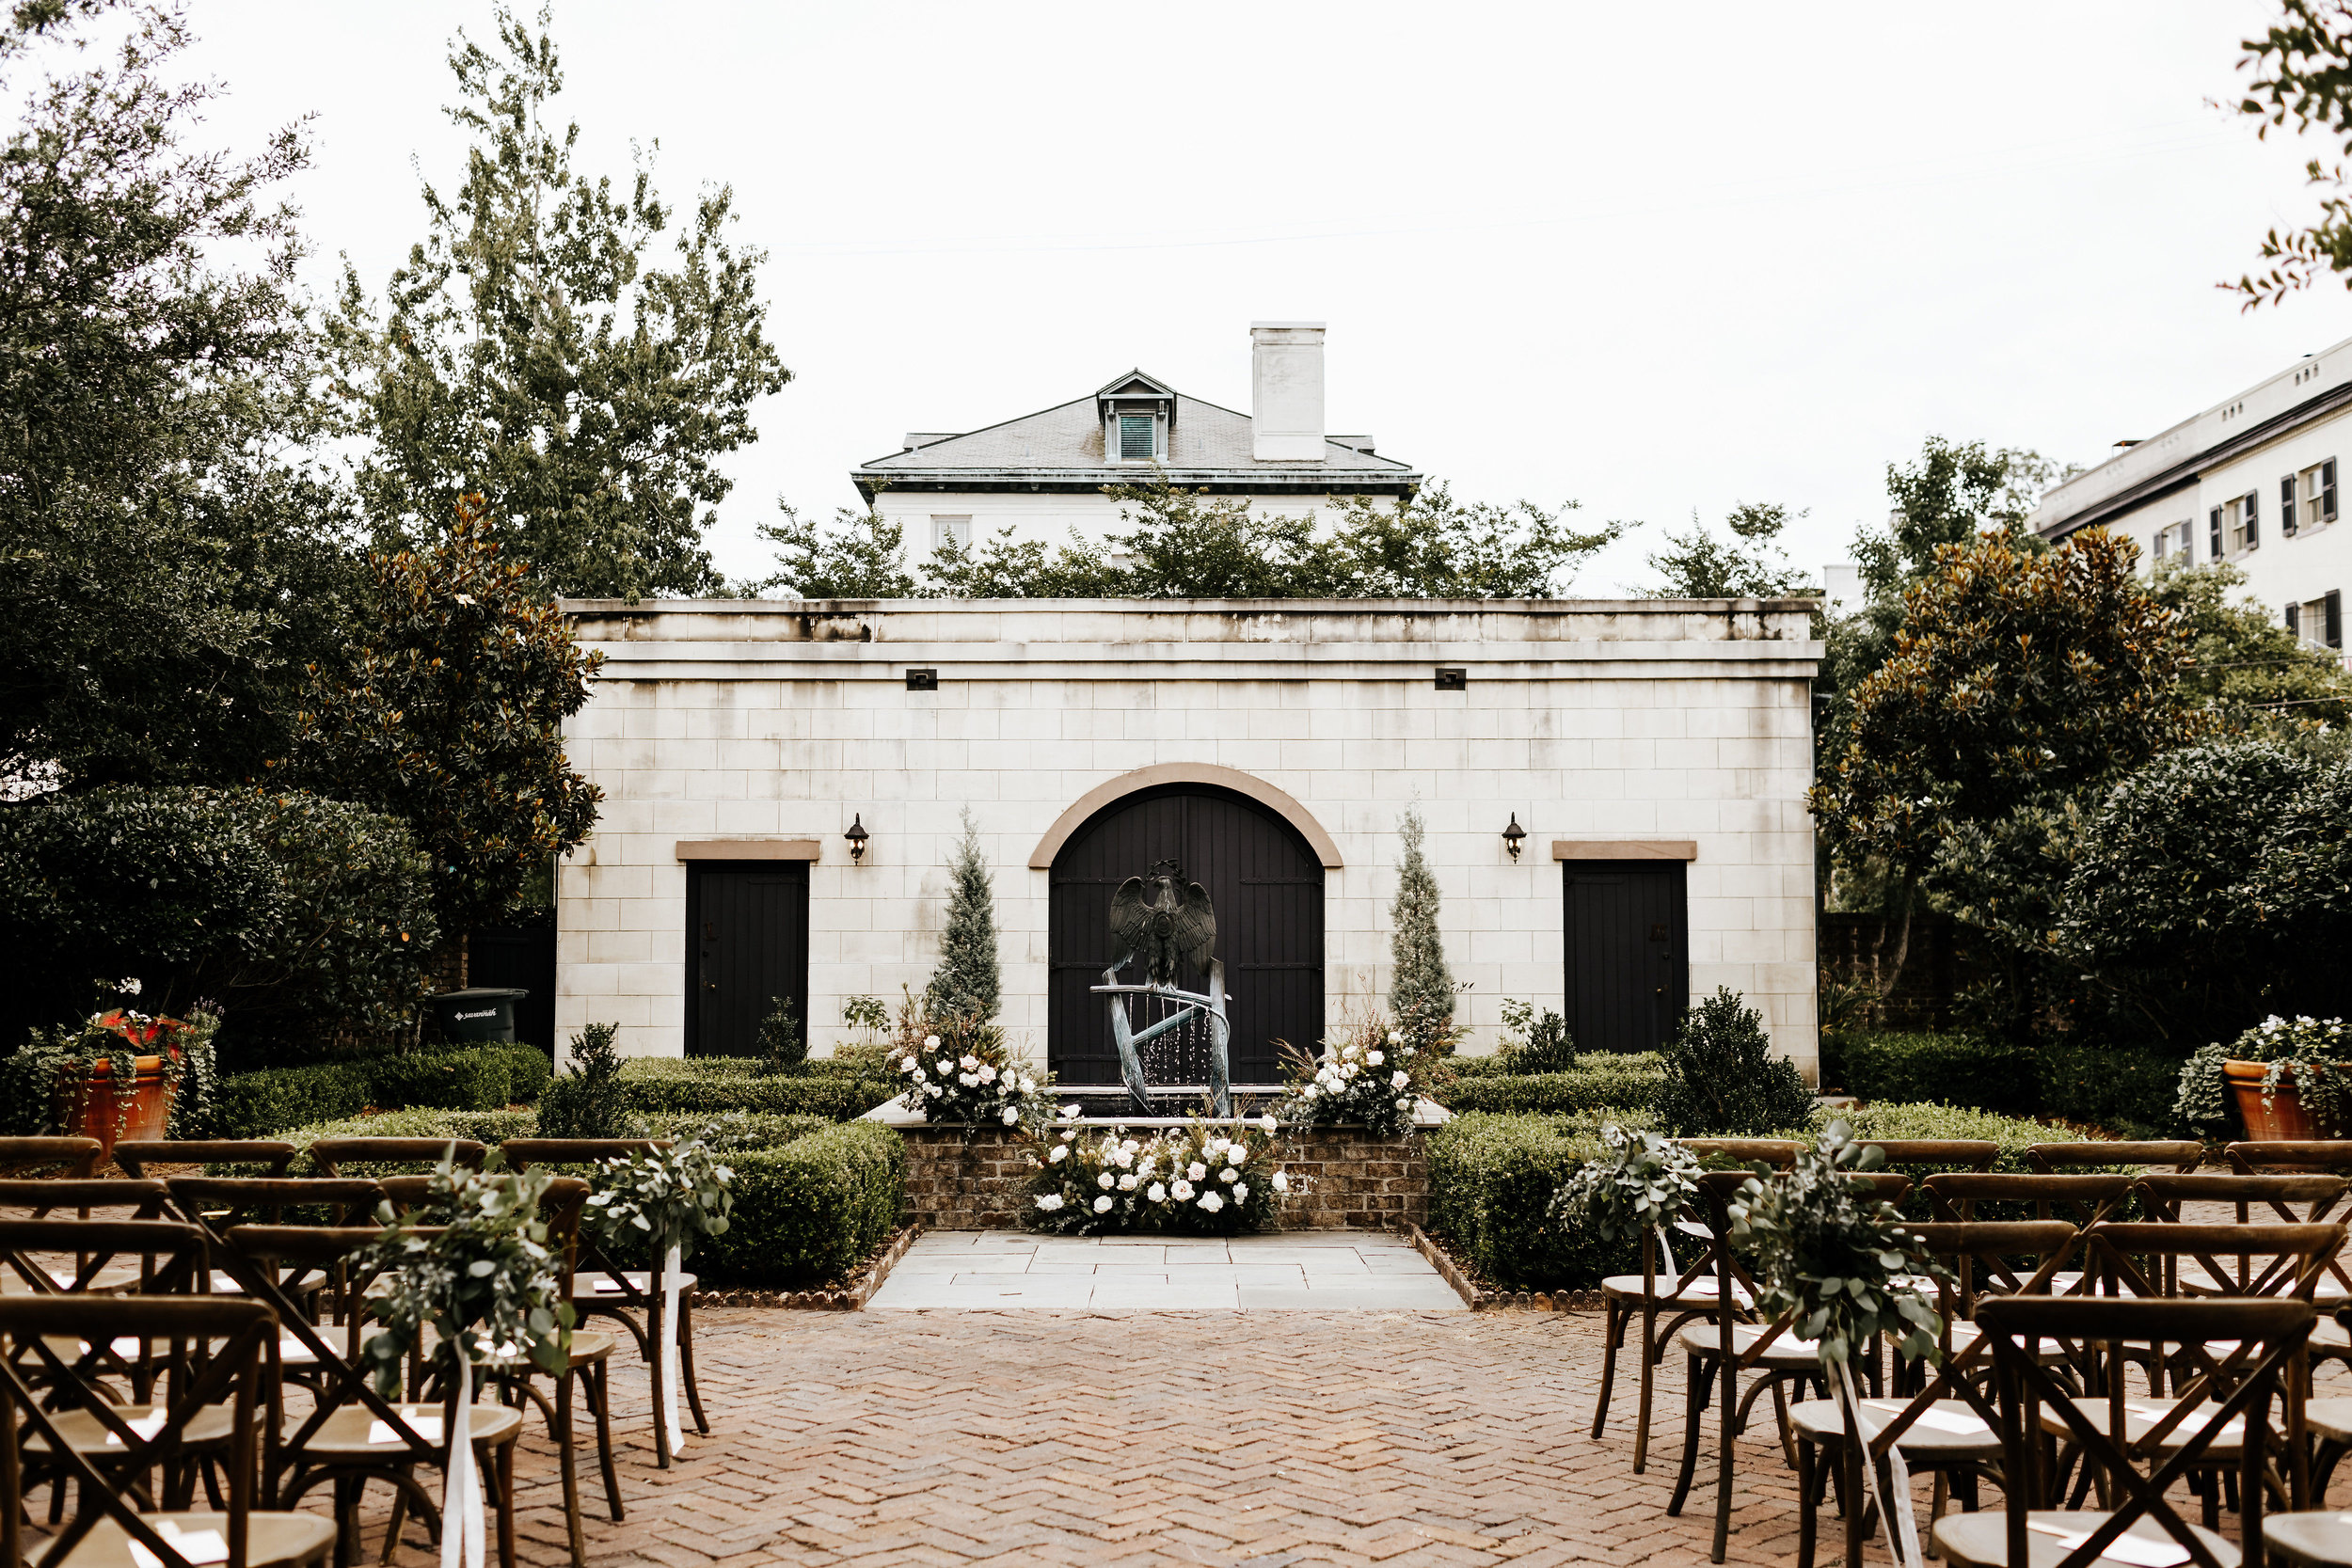 Liz_Cody_Wedding_Harper__Fowlkes_House_Soho_South_Cafe_Savannah_Georgia_Photography_by_V_292.jpg